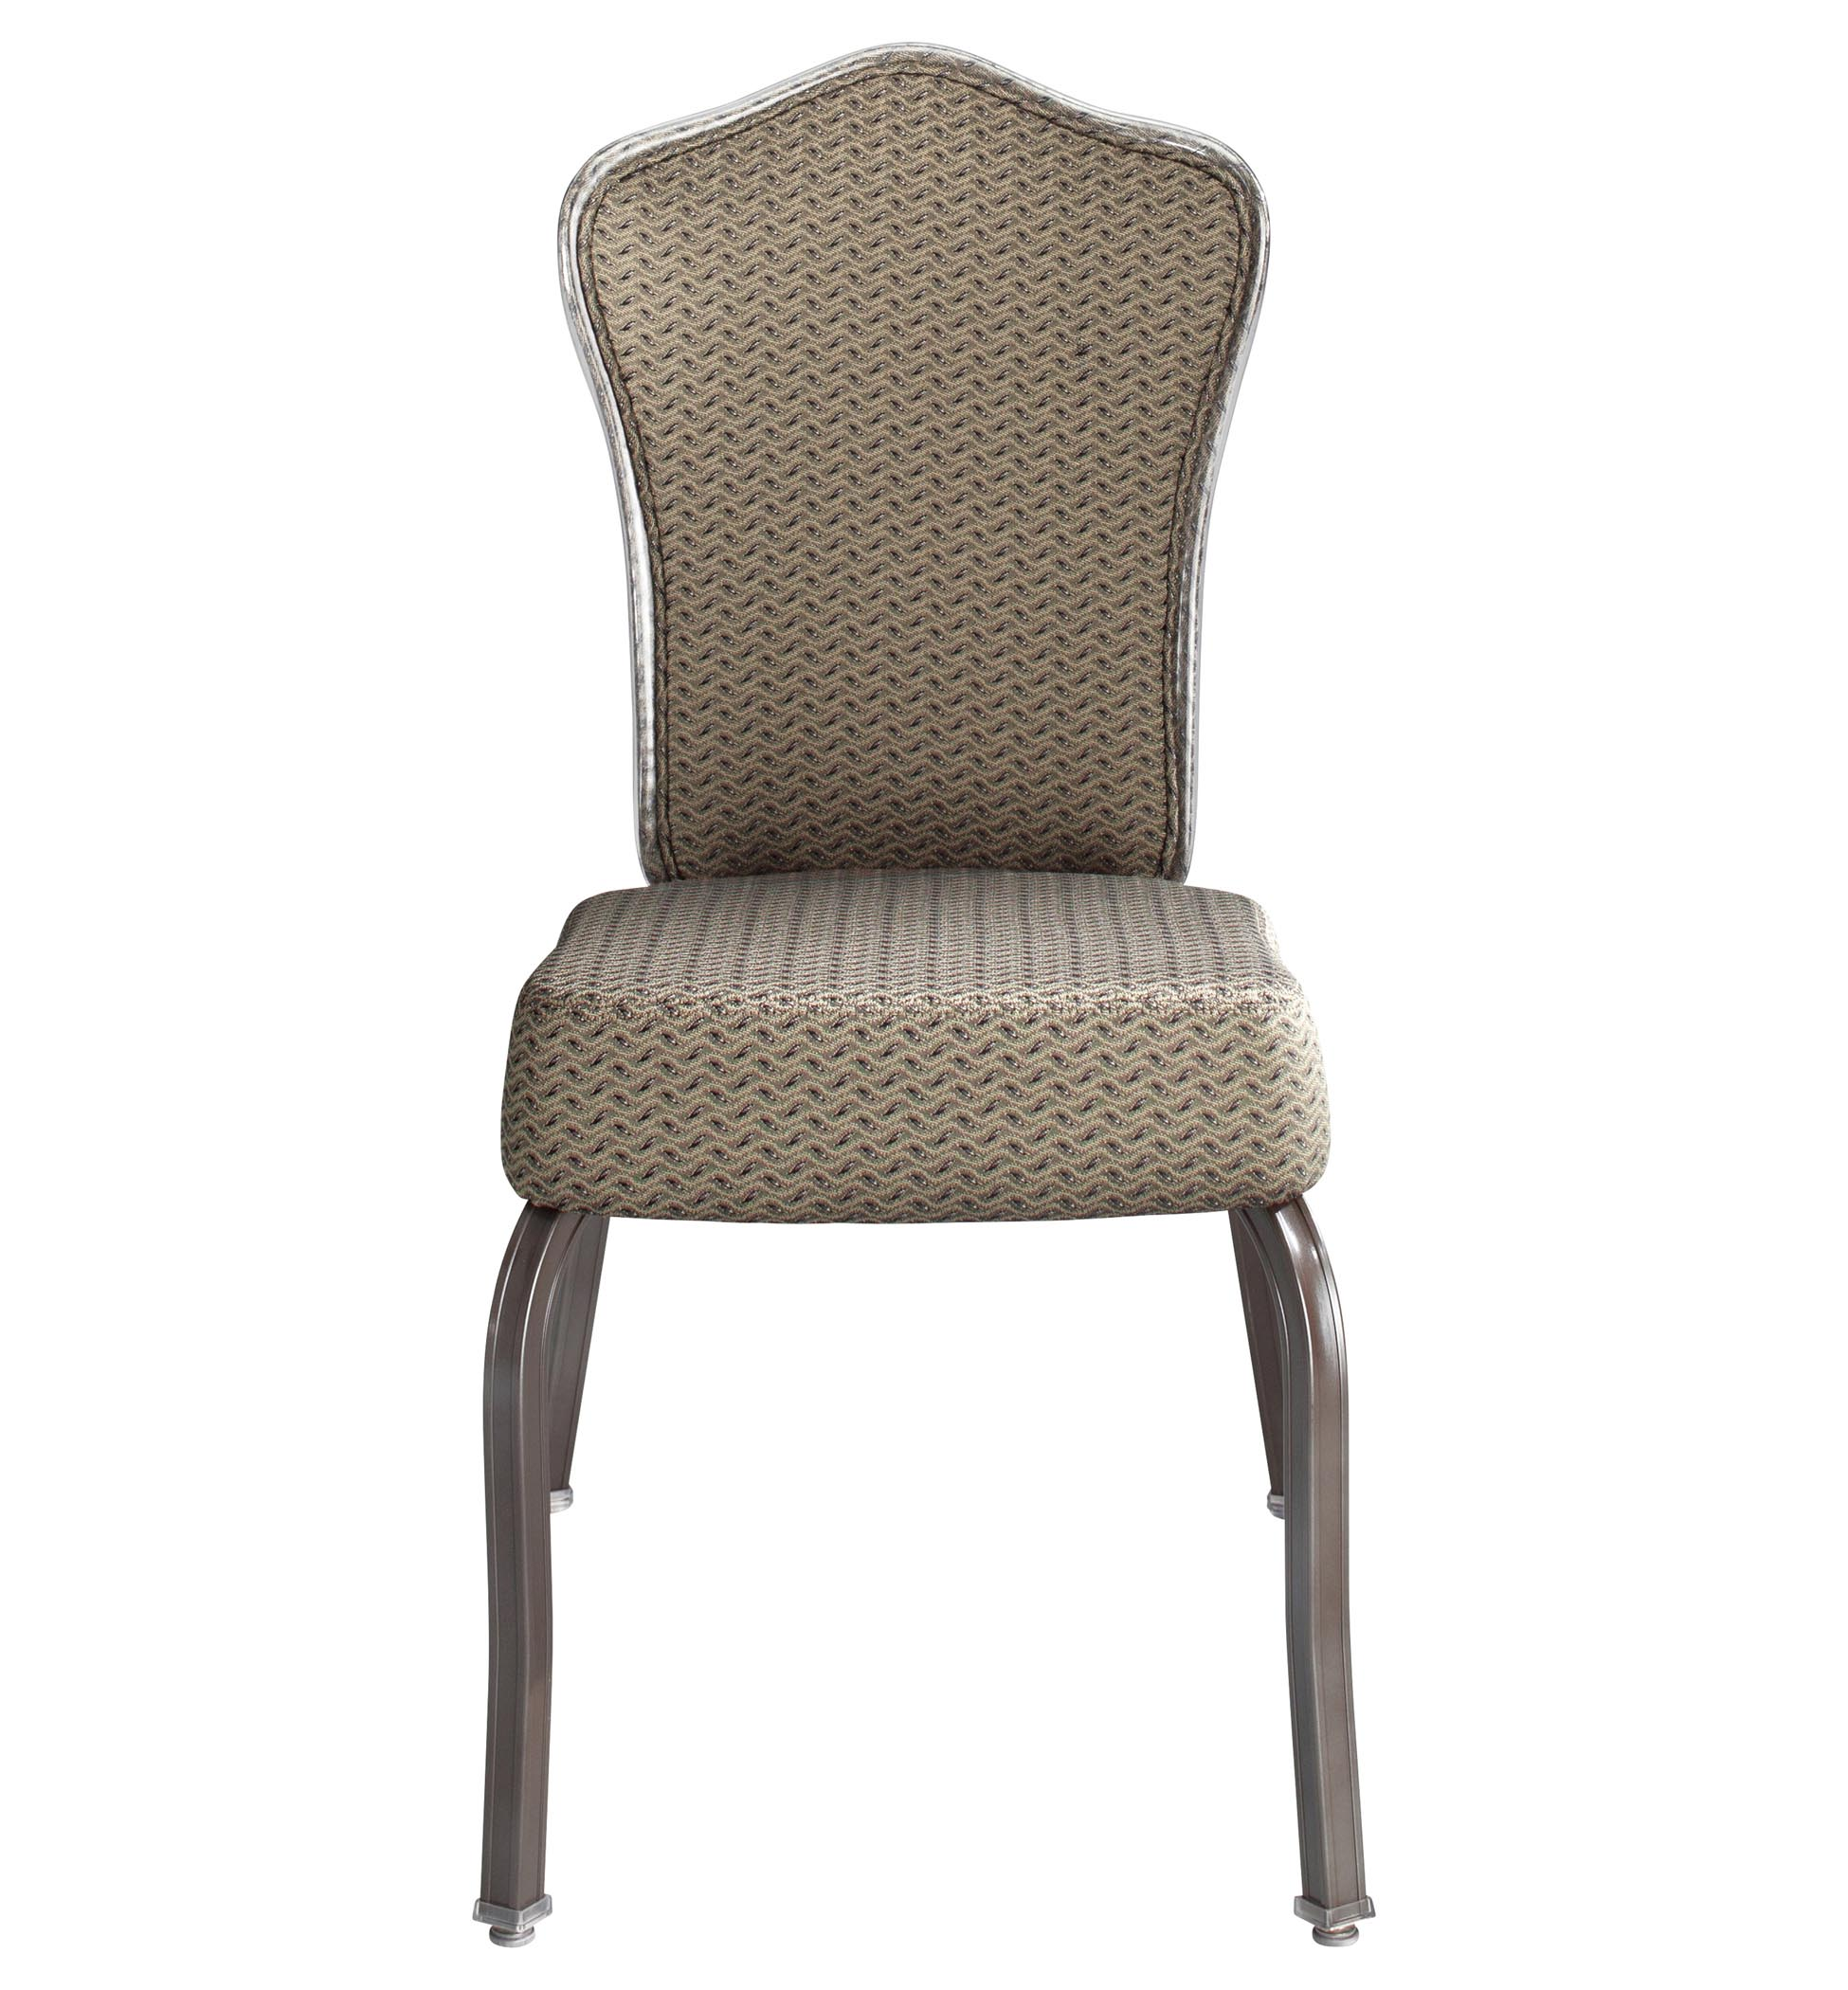 res products chairs high side chair stacking banquet metal